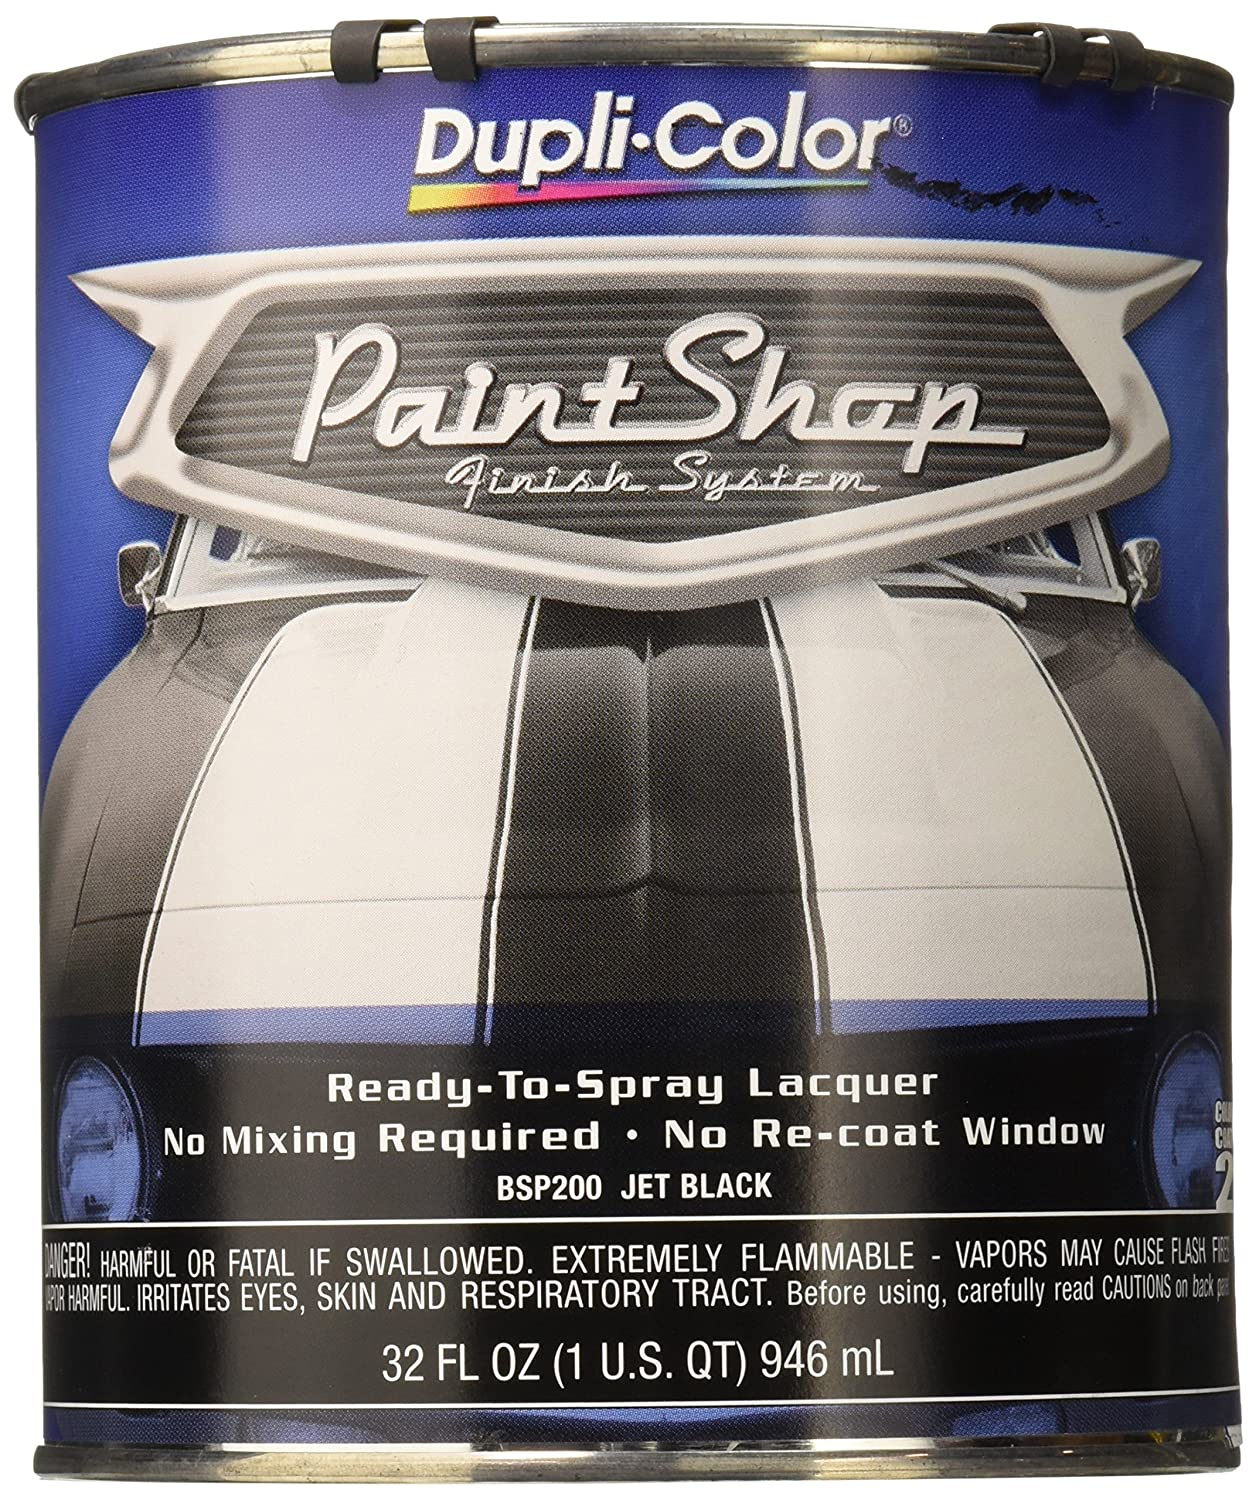 Amazon.com: Dupli-Color BSP200 Jet Black Paint Shop Finish System ...